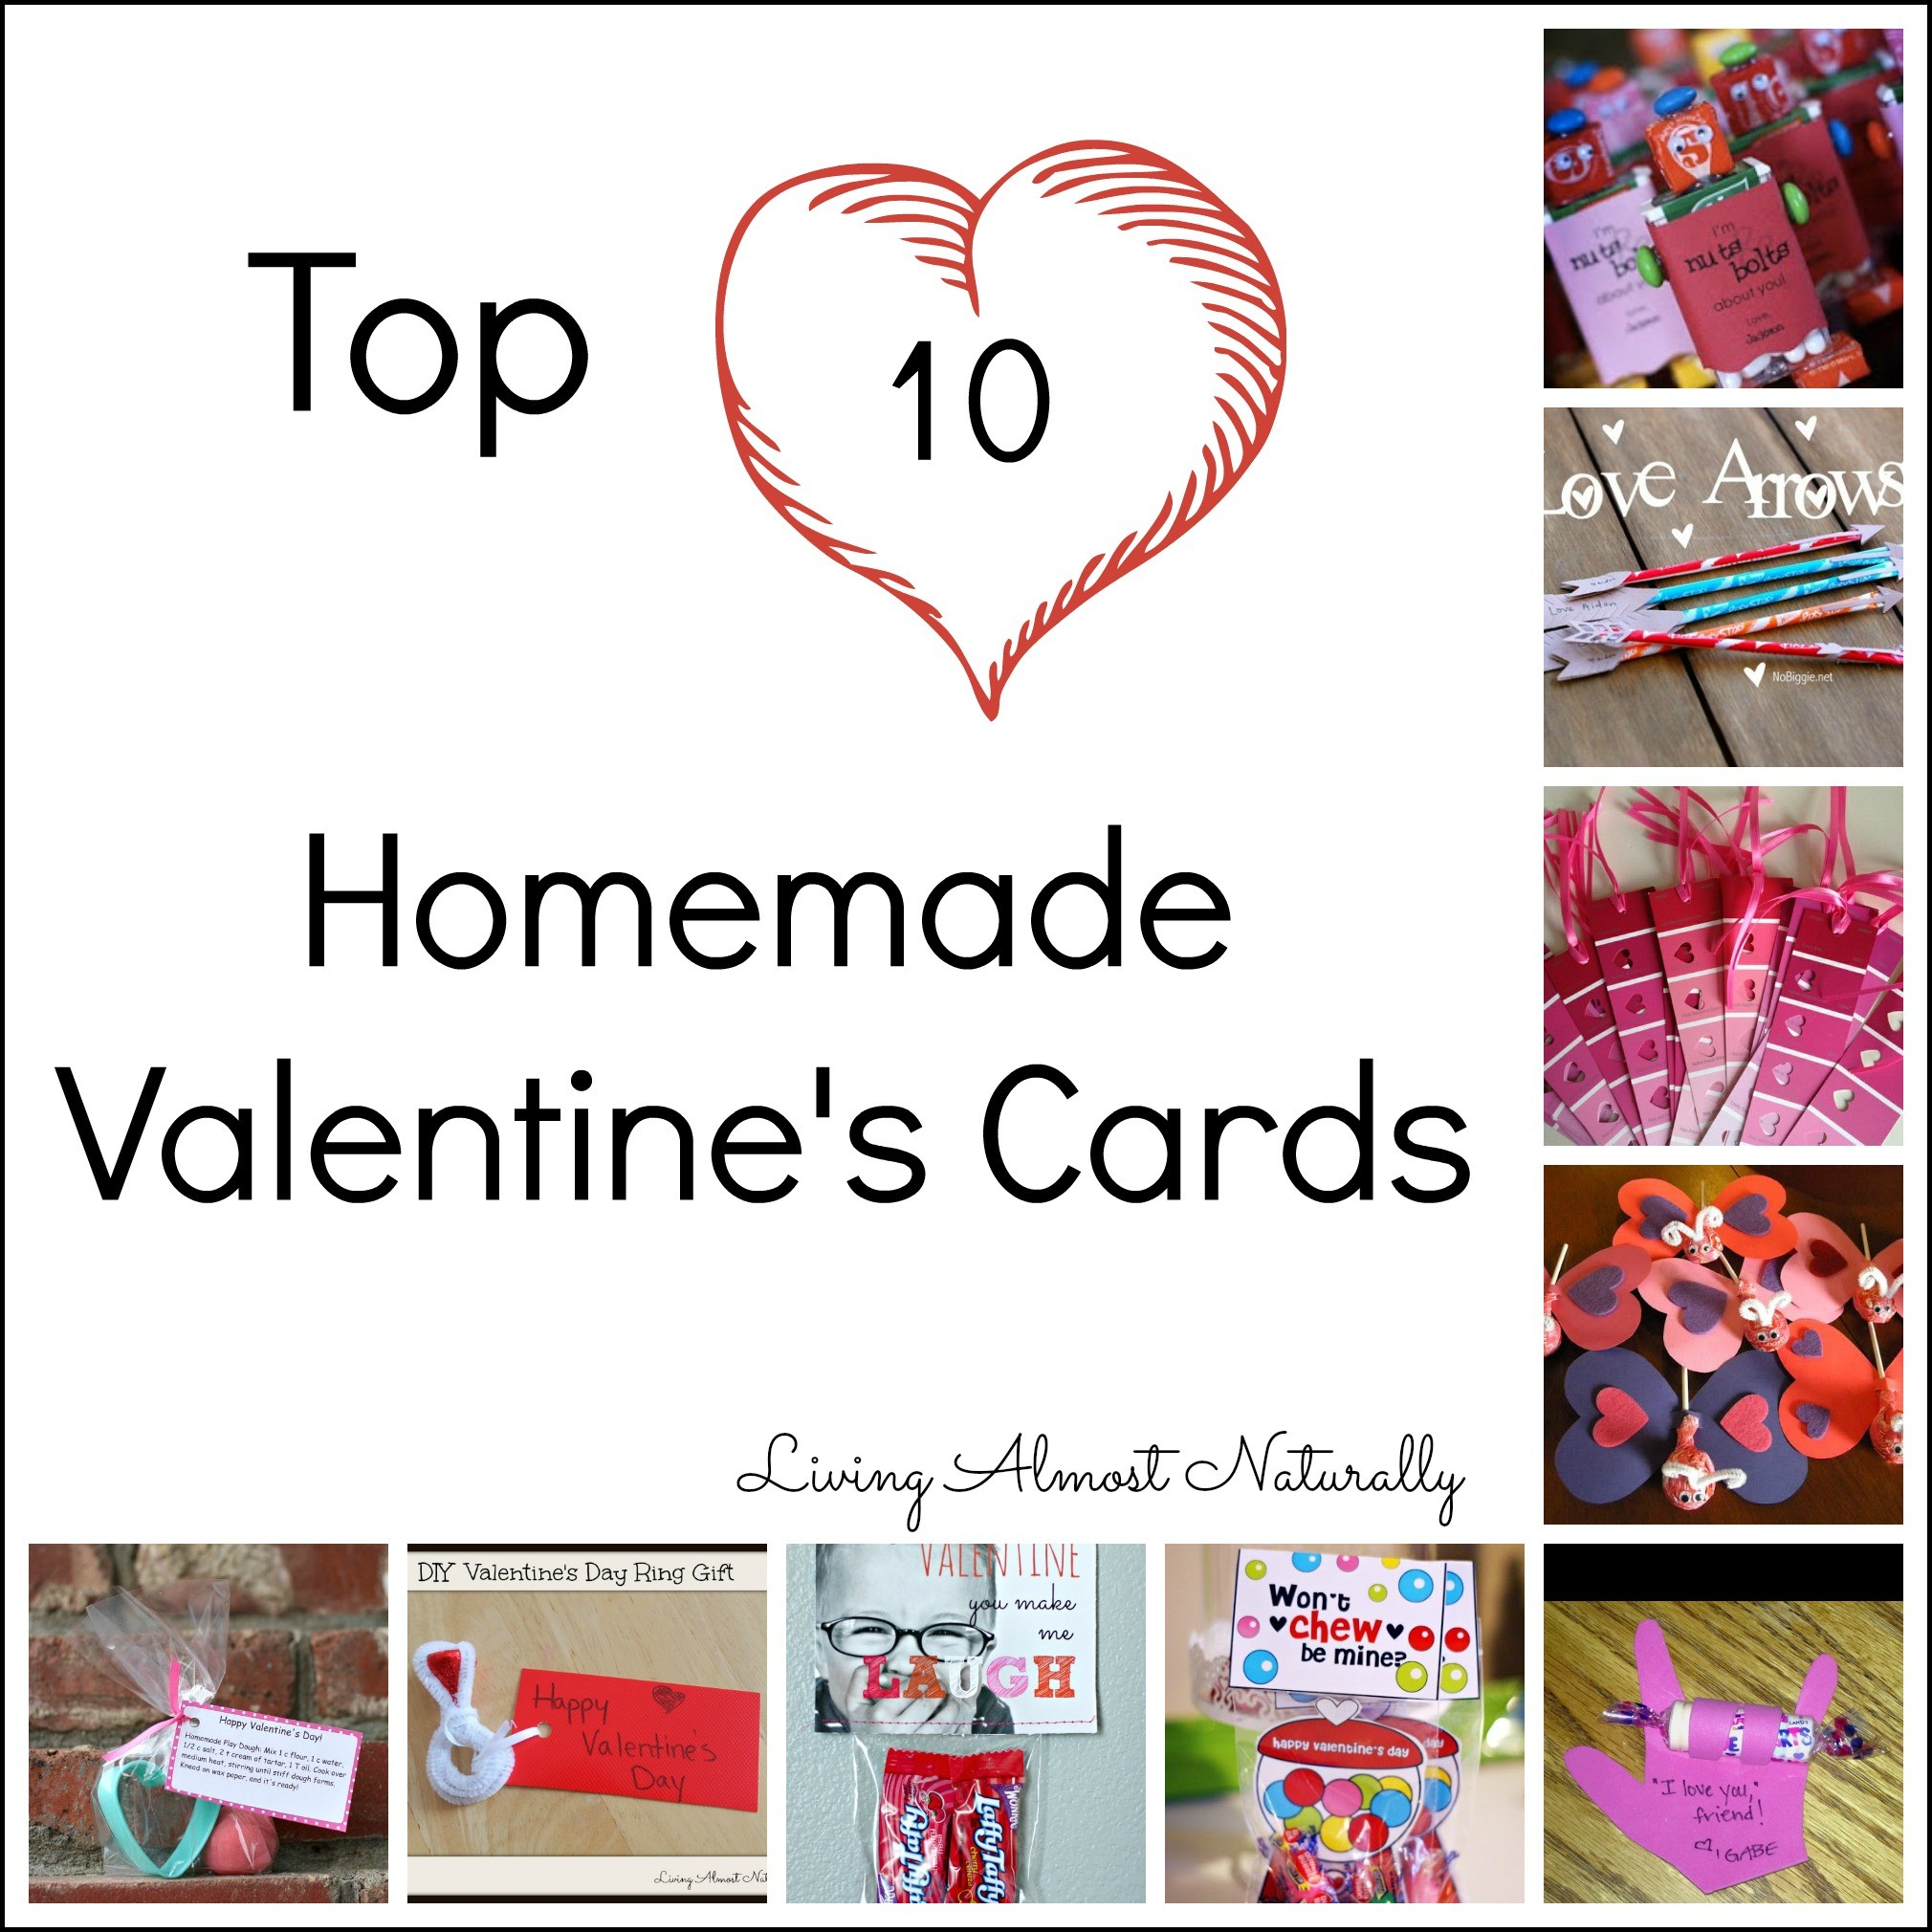 Valentine Card Sayings Ideas Valentine Day – Homemade Valentine Card Sayings